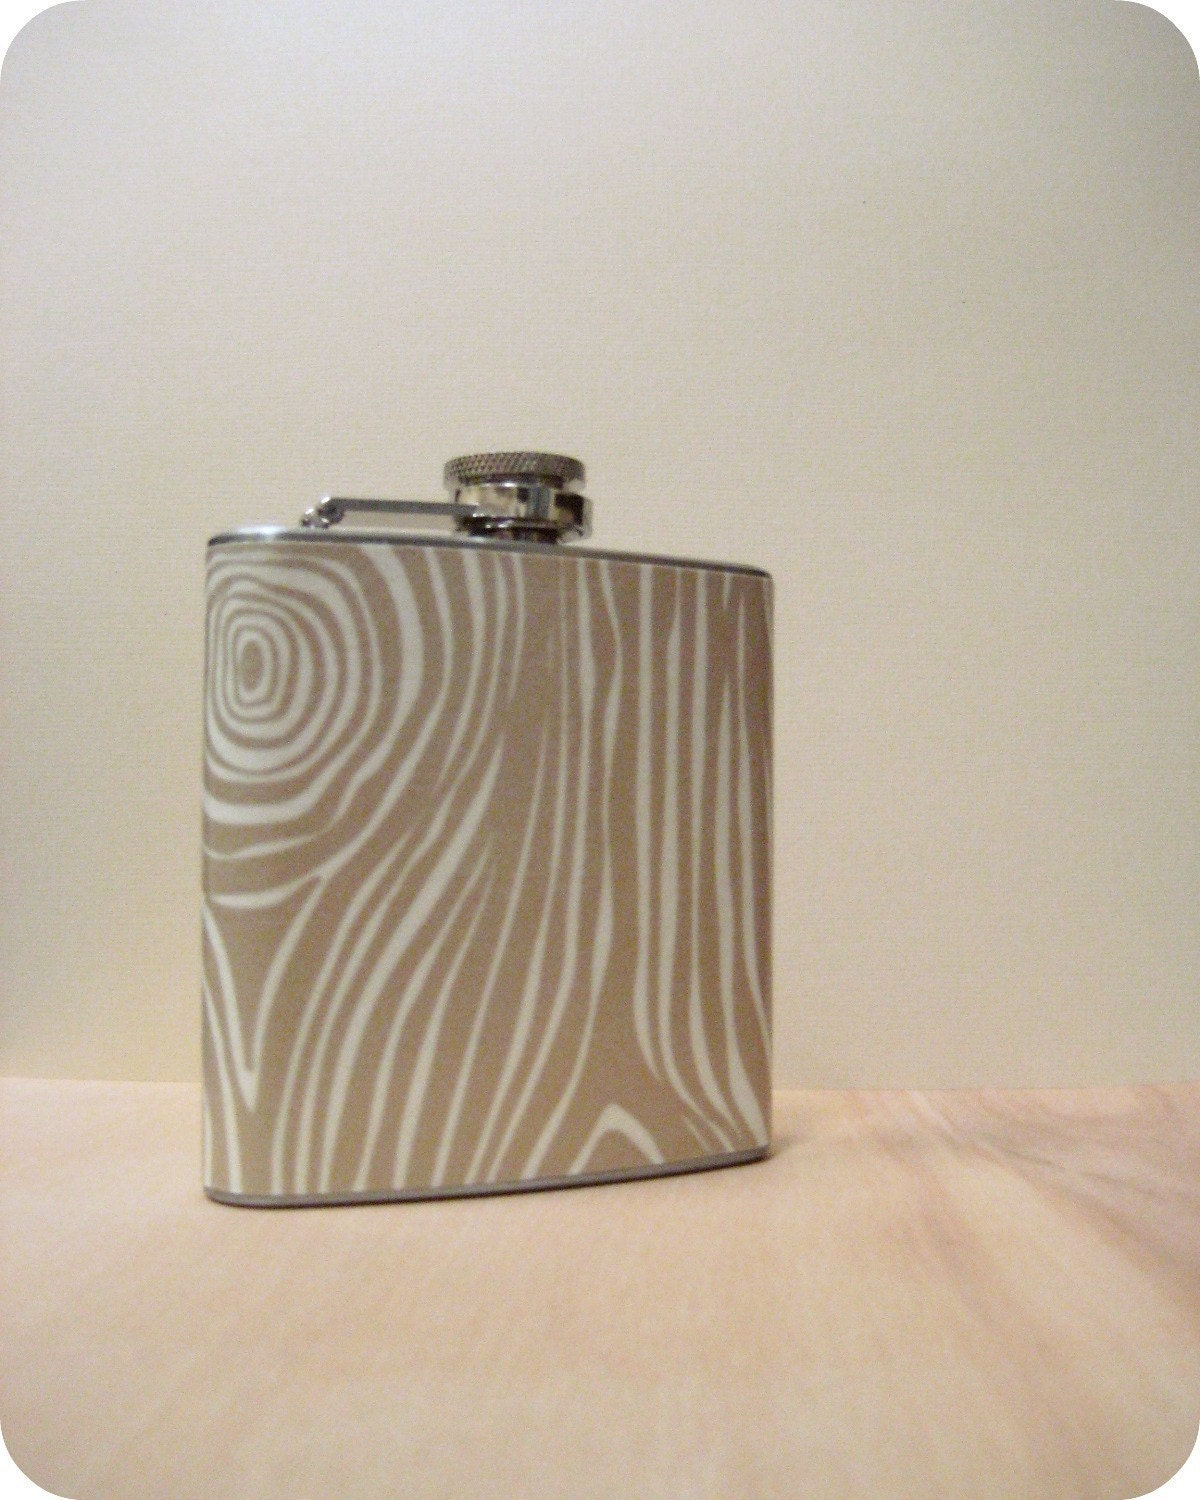 6 oz Stainless Steel Flask - Faux Bois in Soft Brown and Cream